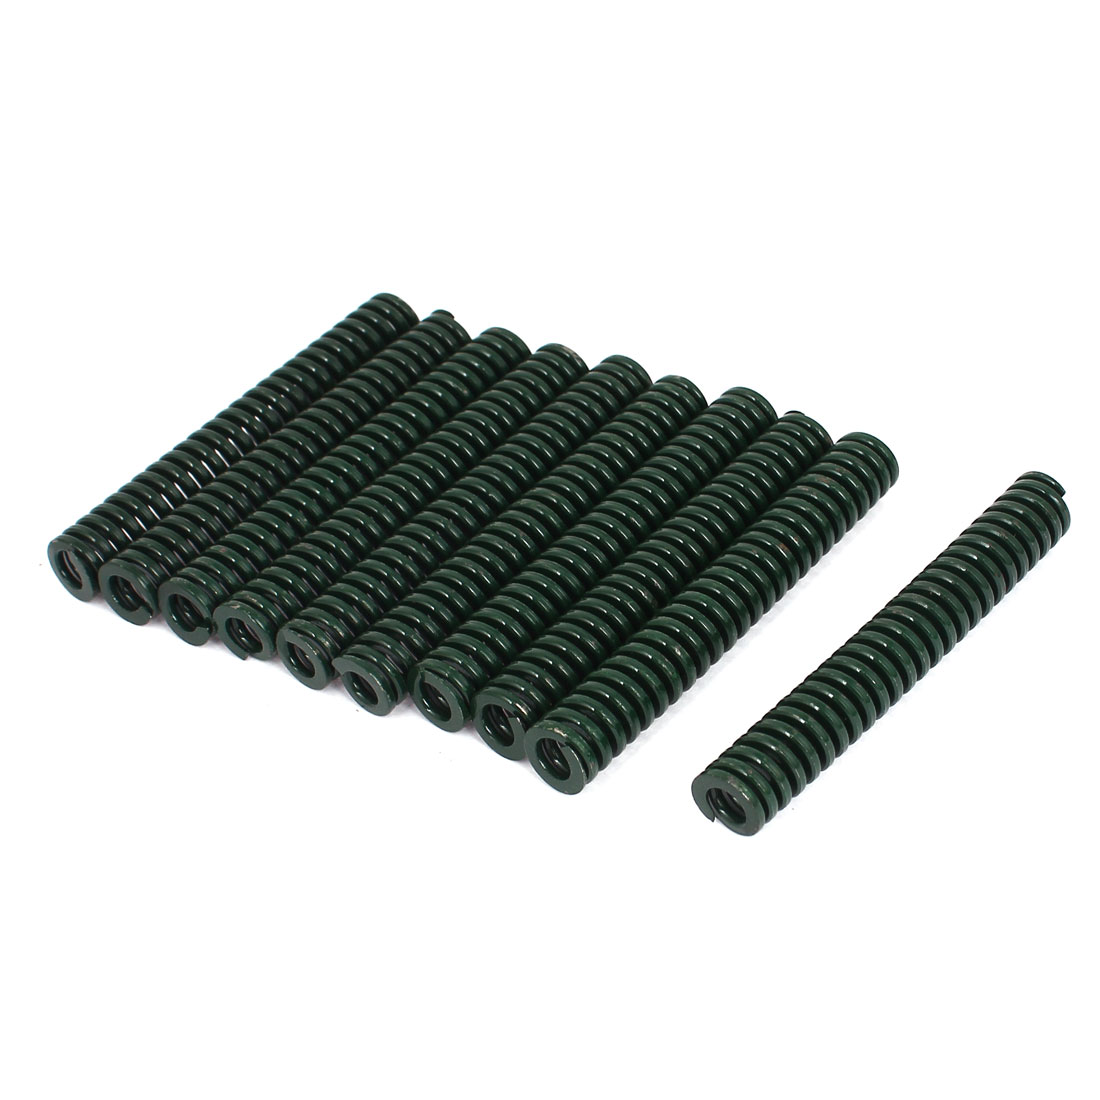 12mm OD 80mm Long Heavy Load Stamping Compression Mold Die Spring Green 10pcs